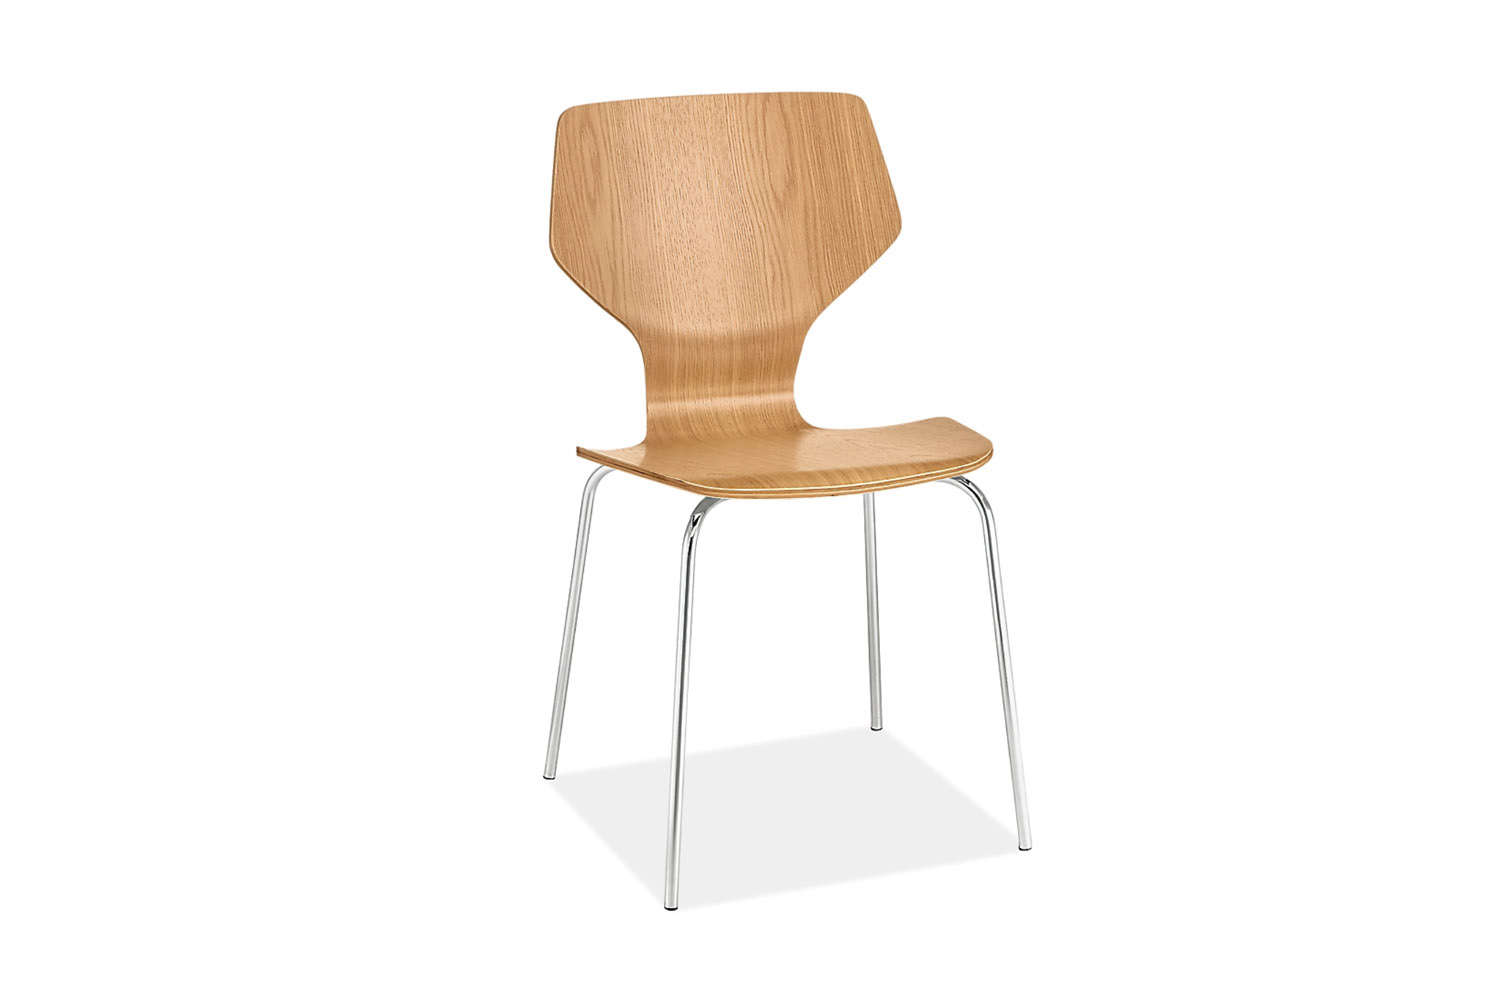 the room & board pike chair in wood is \$\149. 15